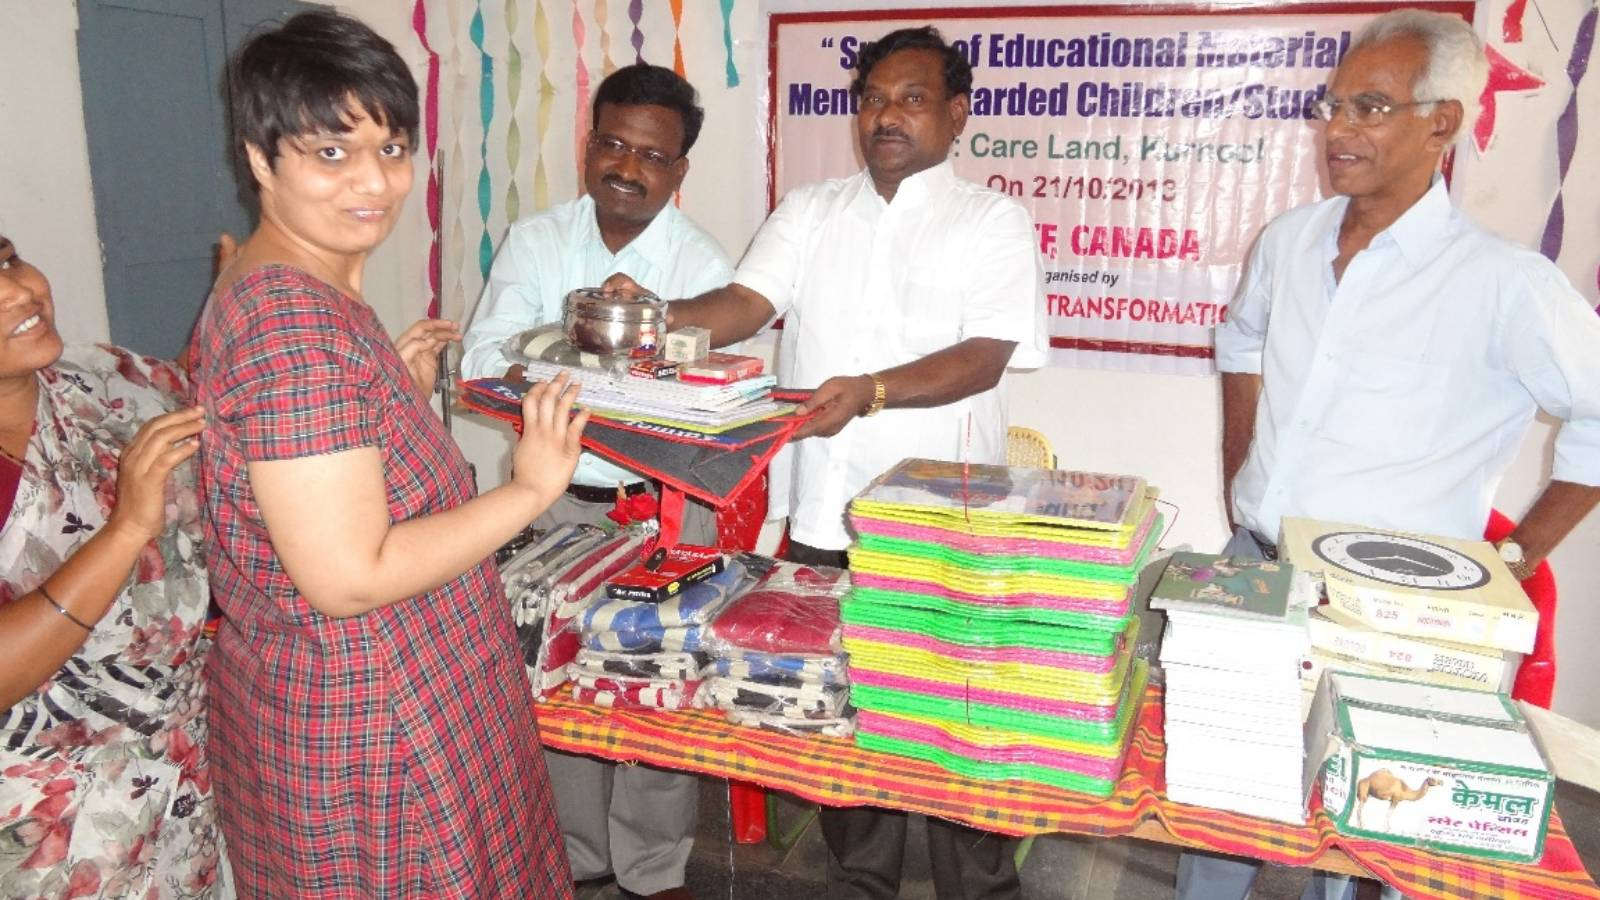 Distribution of Education Materials to Mentally Retarded